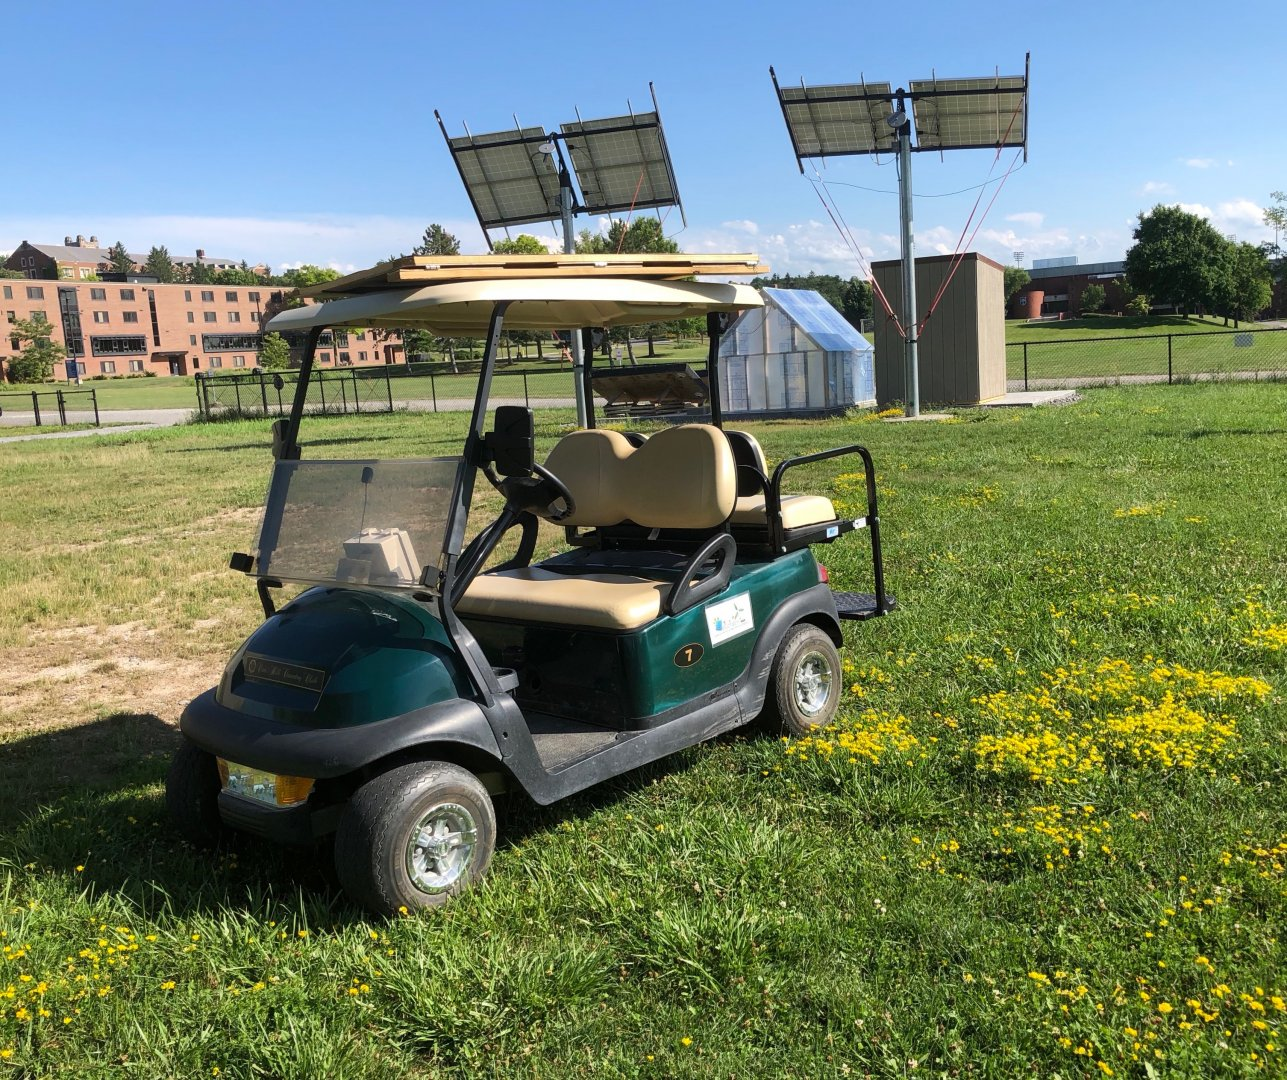 The eCart parked in front of the solar array in the eGarden.